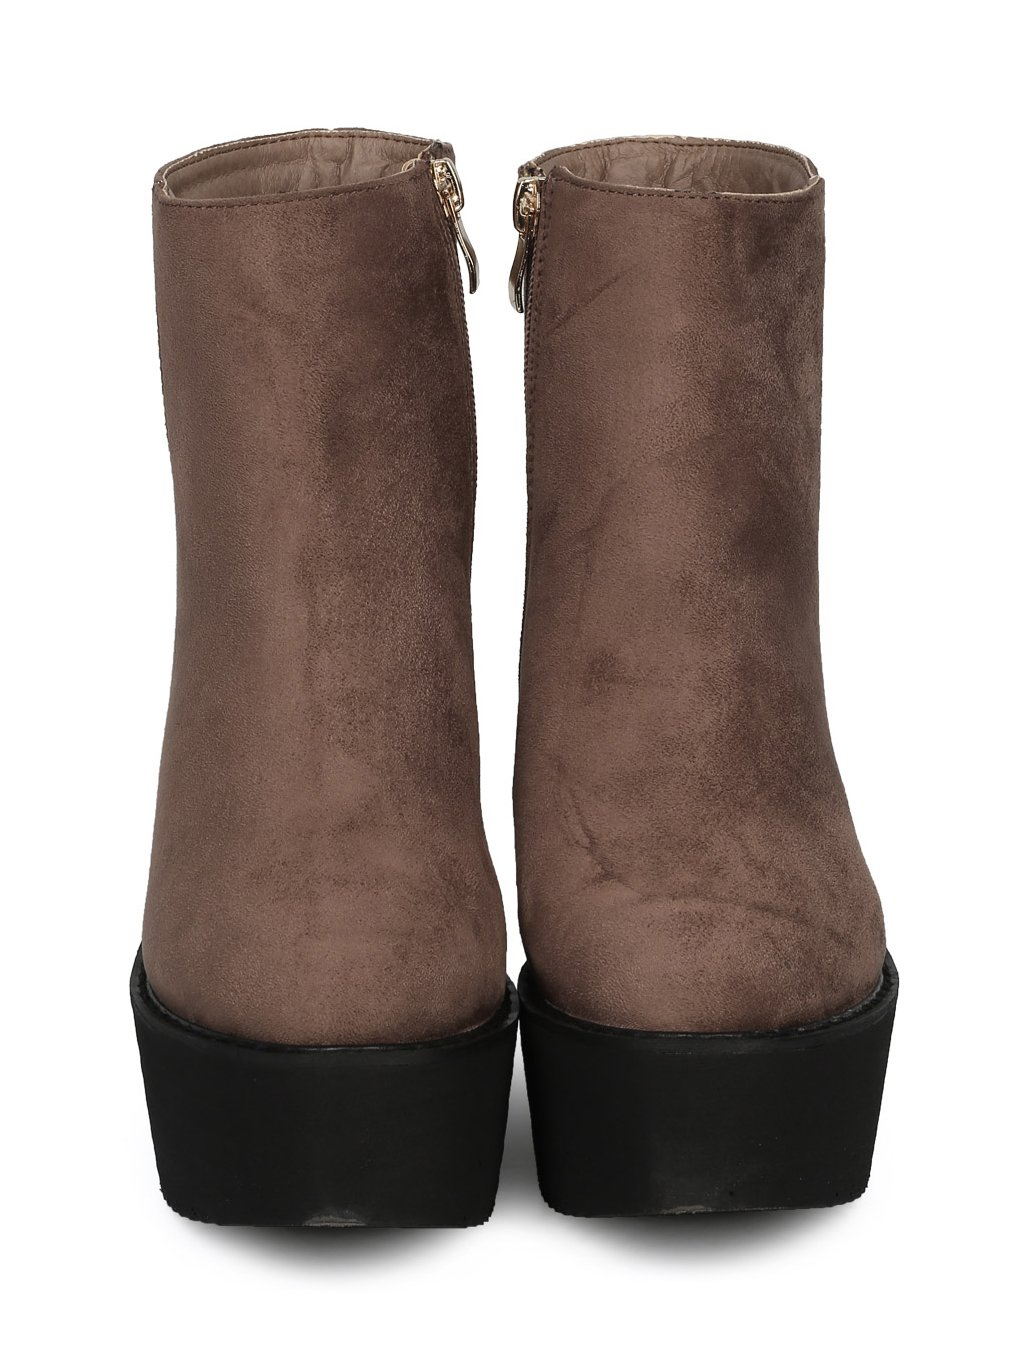 Indulge Hebe-I Women Round Toe Platform Creeper Ankle Bootie HE66 - Taupe Faux Suede (Size: 7.0) by Indulge (Image #3)